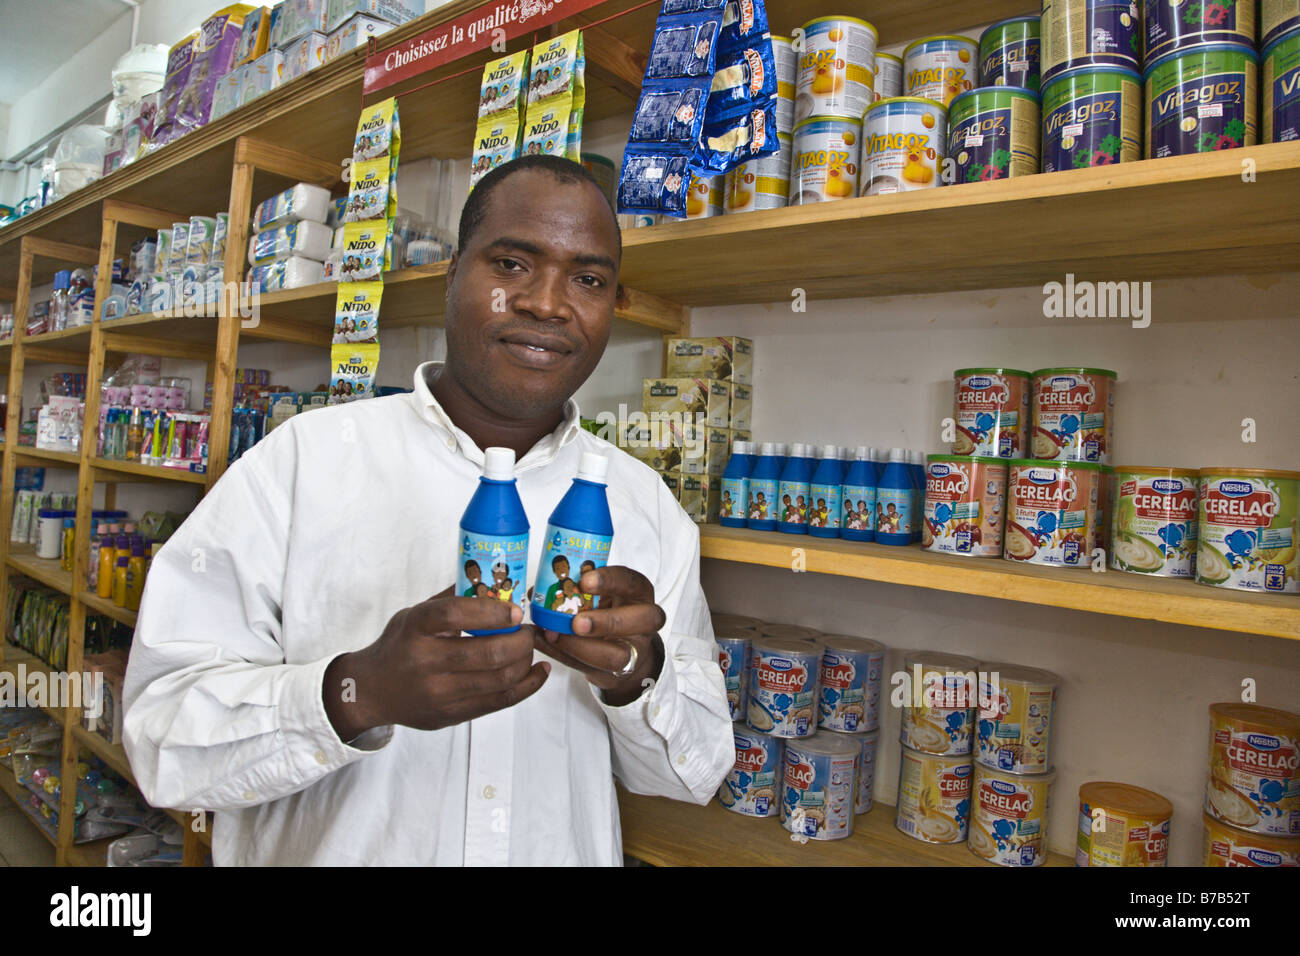 A salesman at a grocery store in Conakry, Guinea, holds up bottles of Sur'Eau, a chlorine product. - Stock Image